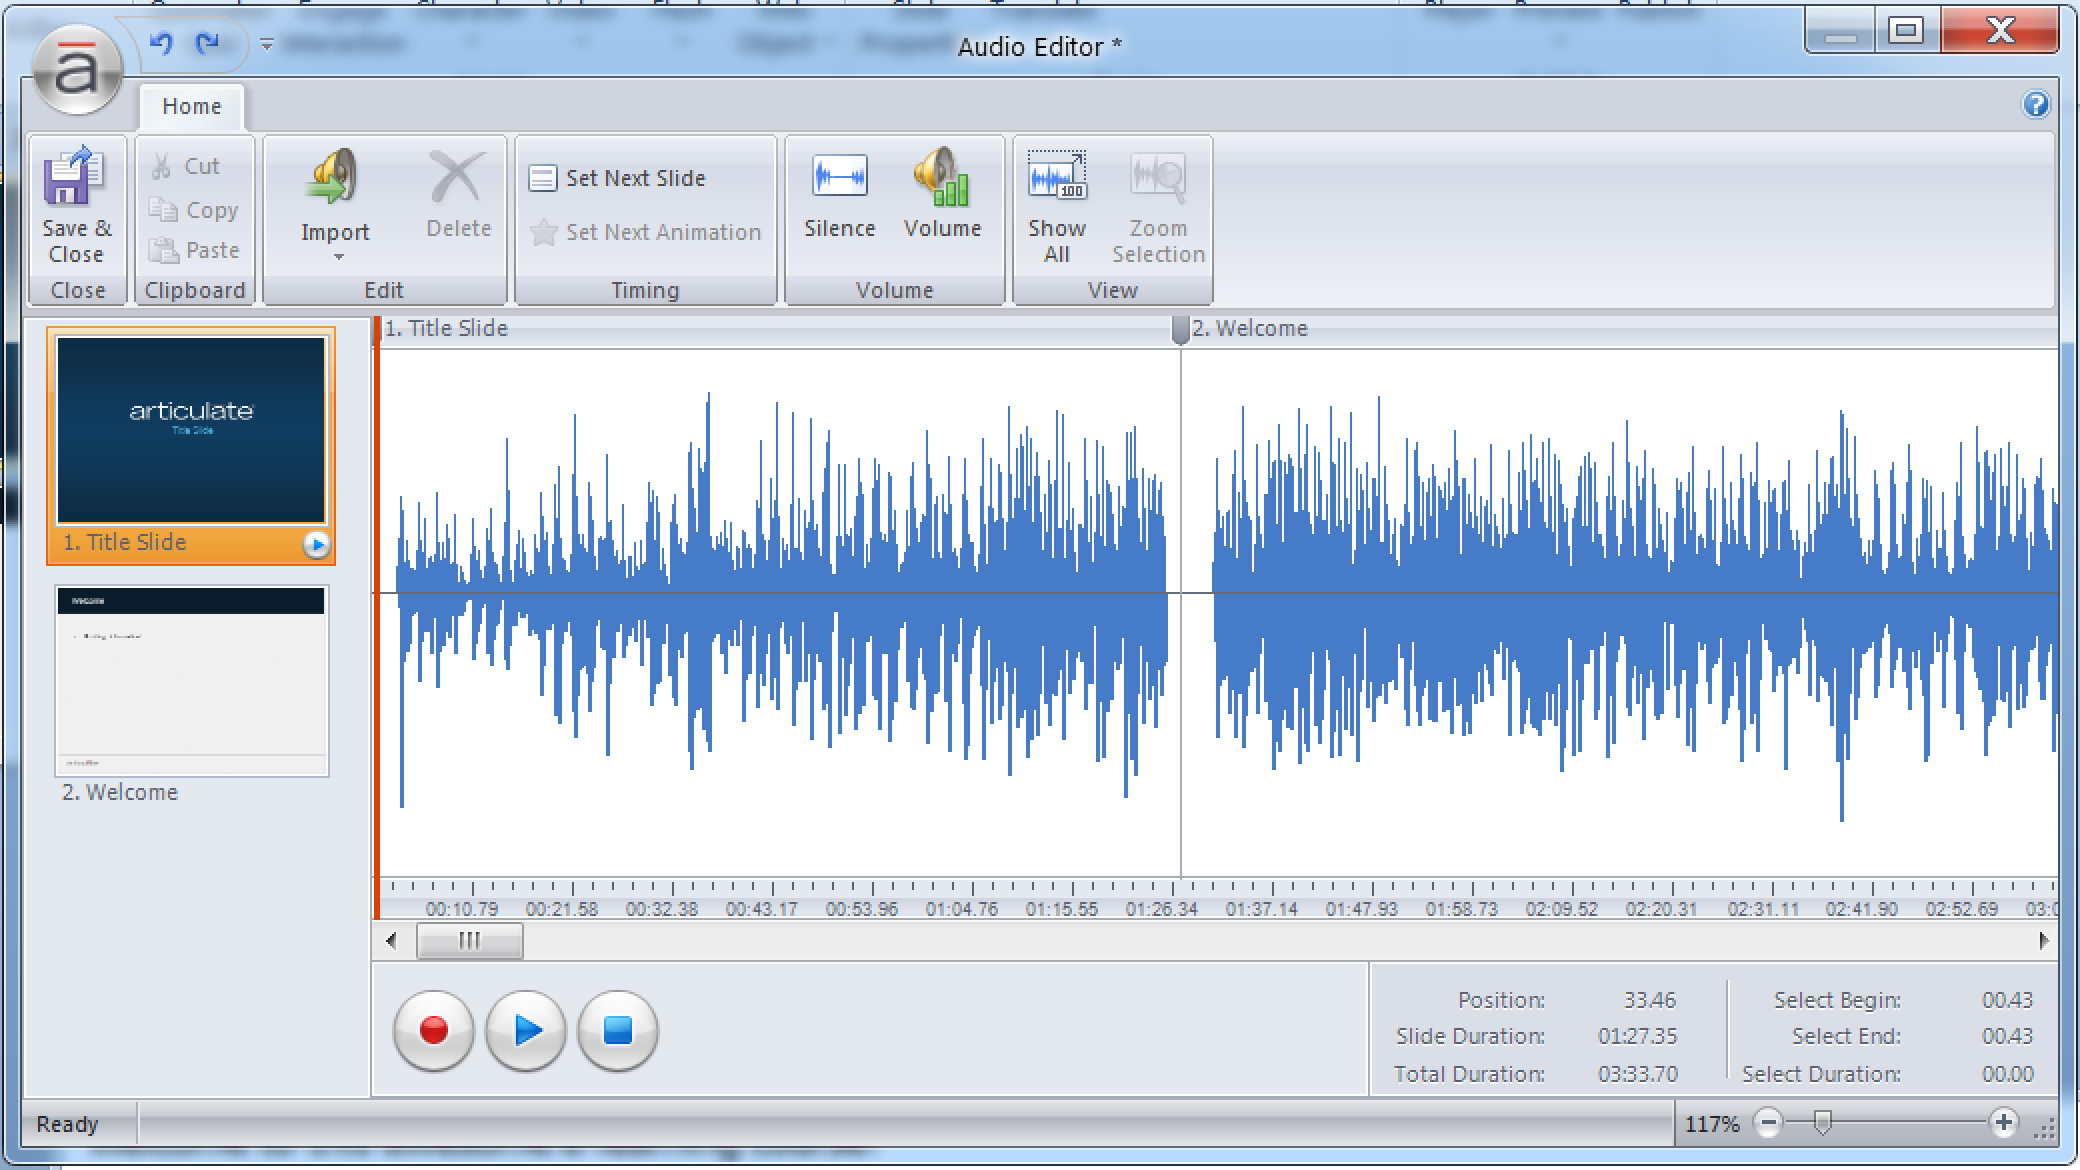 Audio Editor Window